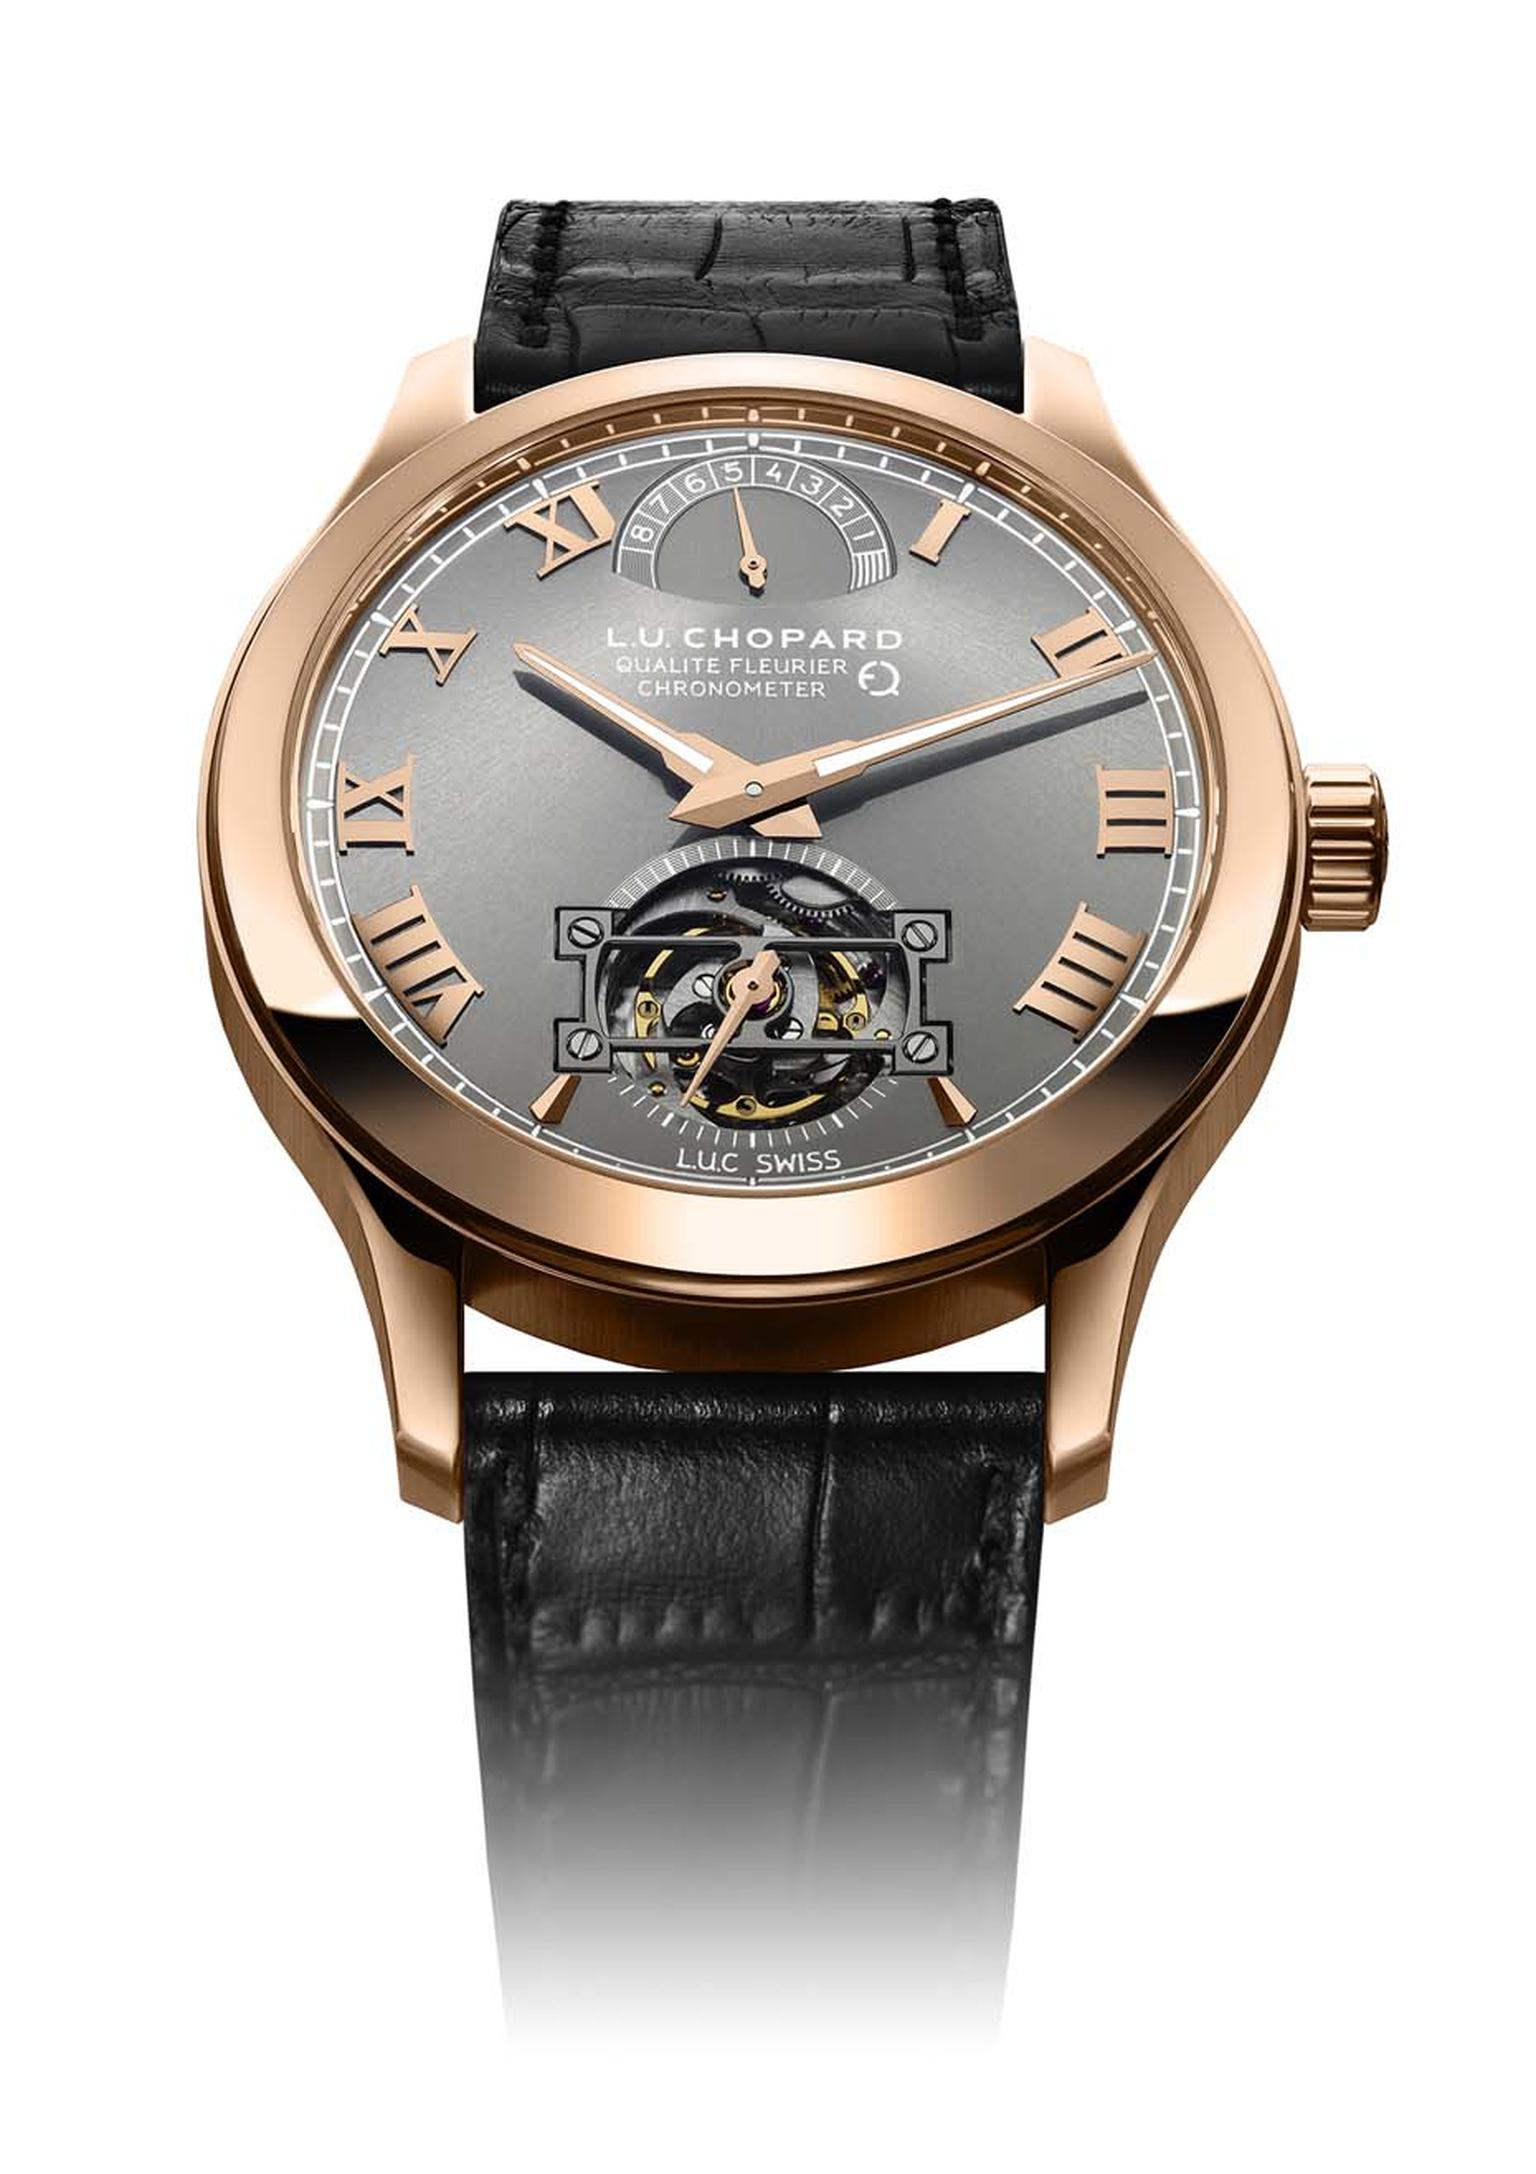 Maria's choice for best new men's watch: Chopard's handsome new L.U.C Tourbillon QF Fairmined is the only watch in the world that can guarantee the gold used in its making was mined in a responsible manner.